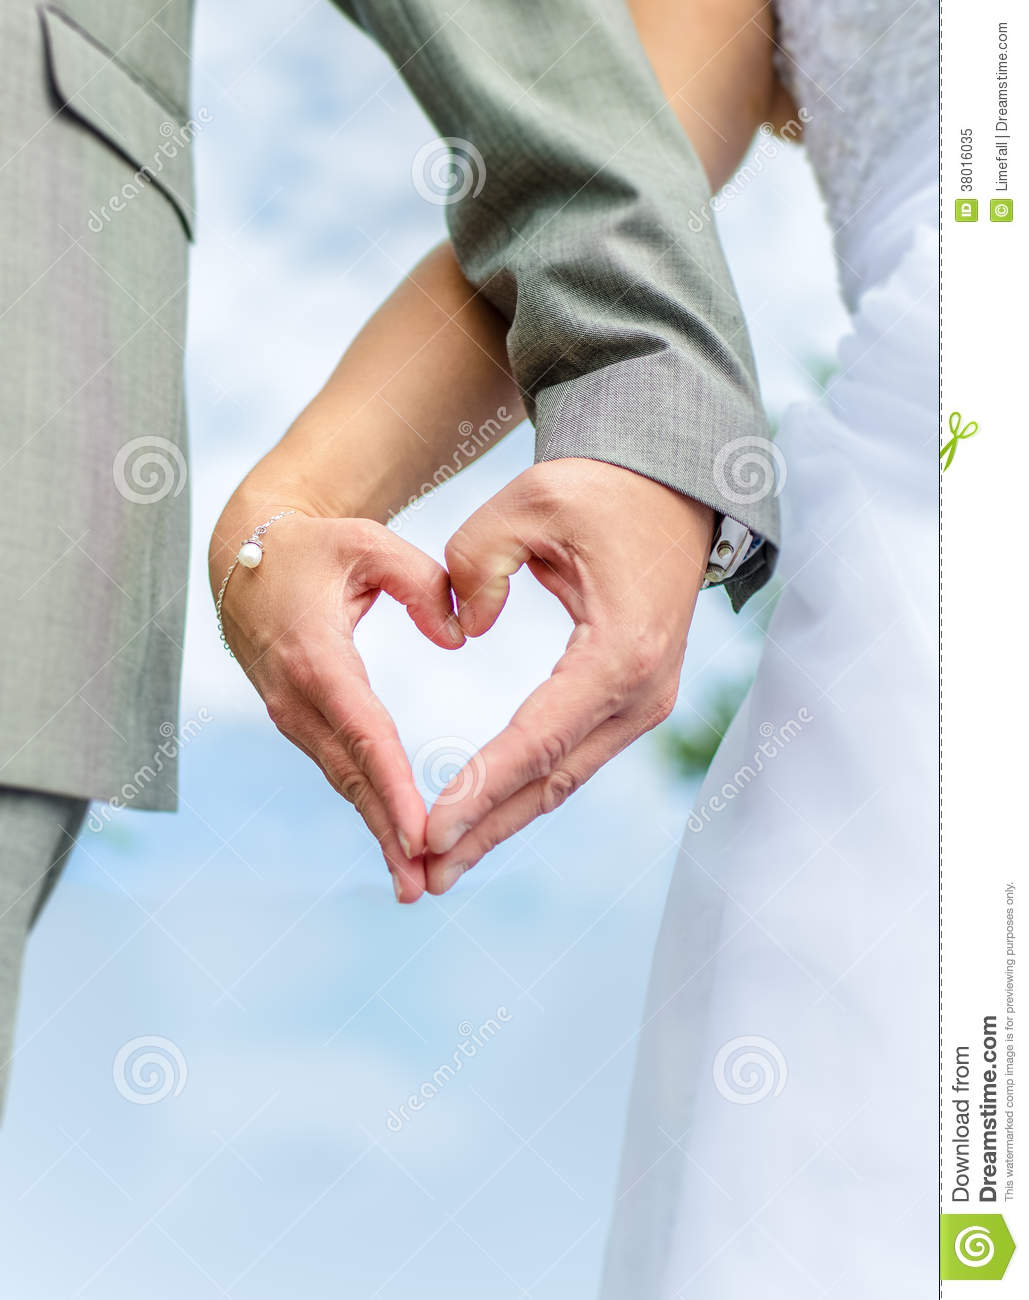 wedding couple holding theri hands in the shape of a heart.